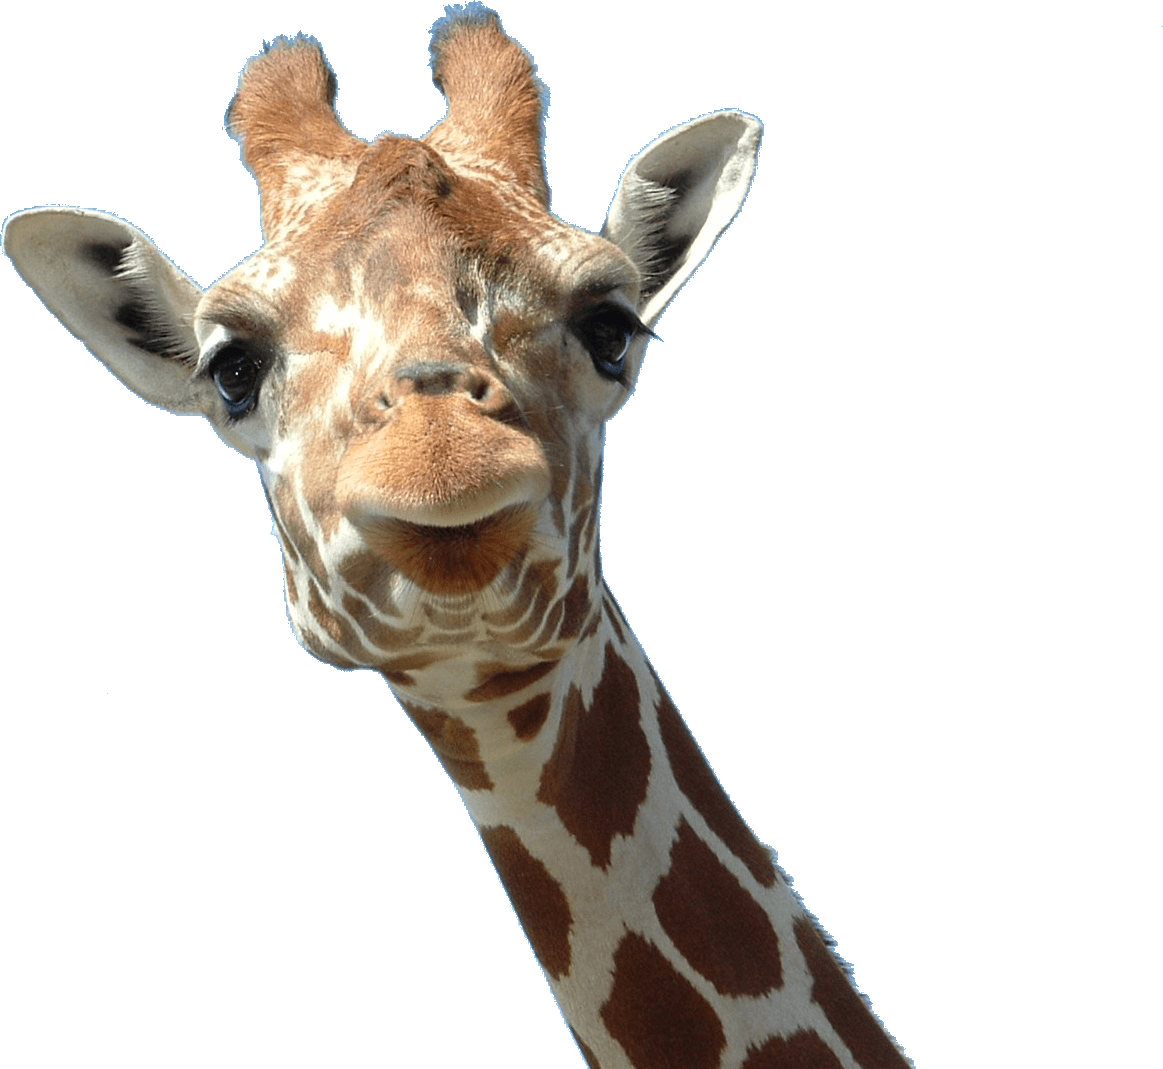 Giraffe head png. Face transparent stickpng animals